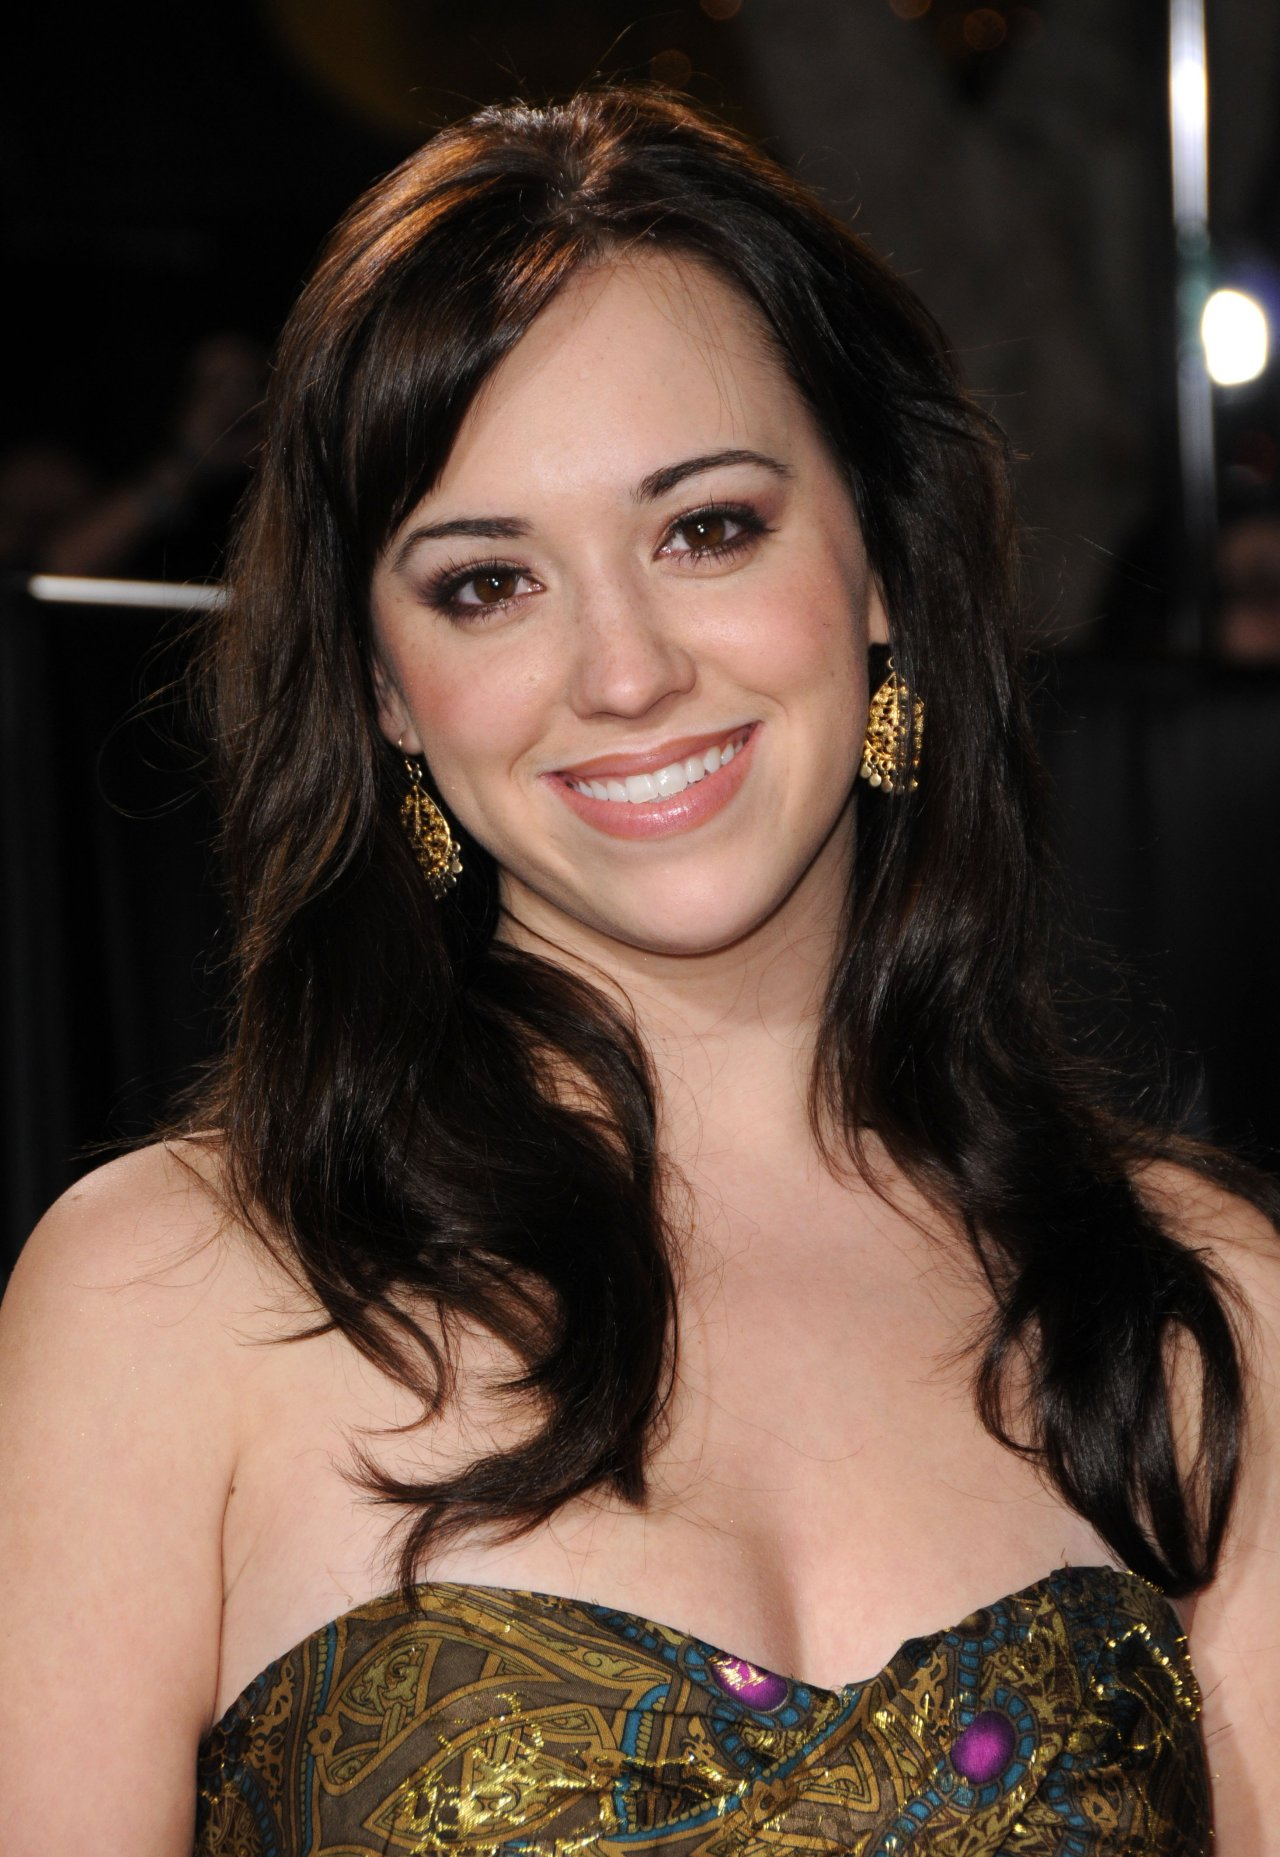 Andrea Bowen Naked Great celebrities and famous women: 01/01/12